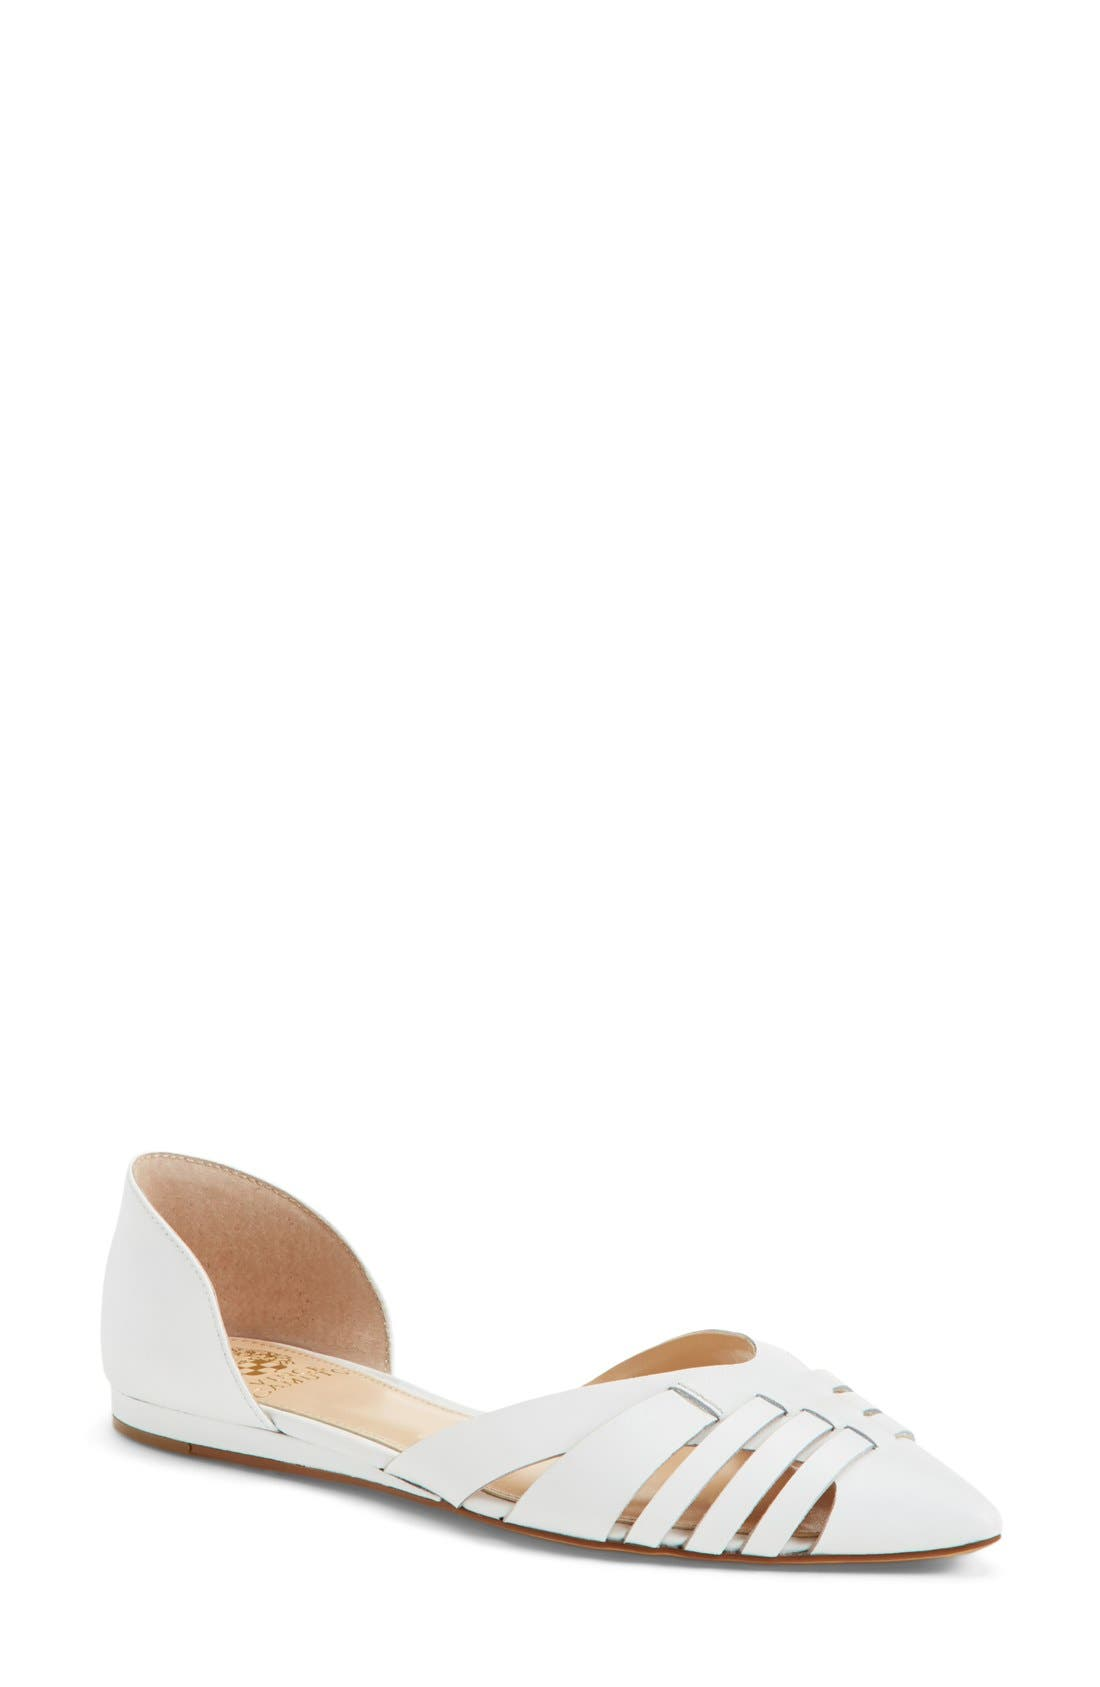 Alternate Image 1 Selected - Vince Camuto 'Hallie' Woven Leather d'Orsay Flat (Women) (Nordstrom Exclusive)